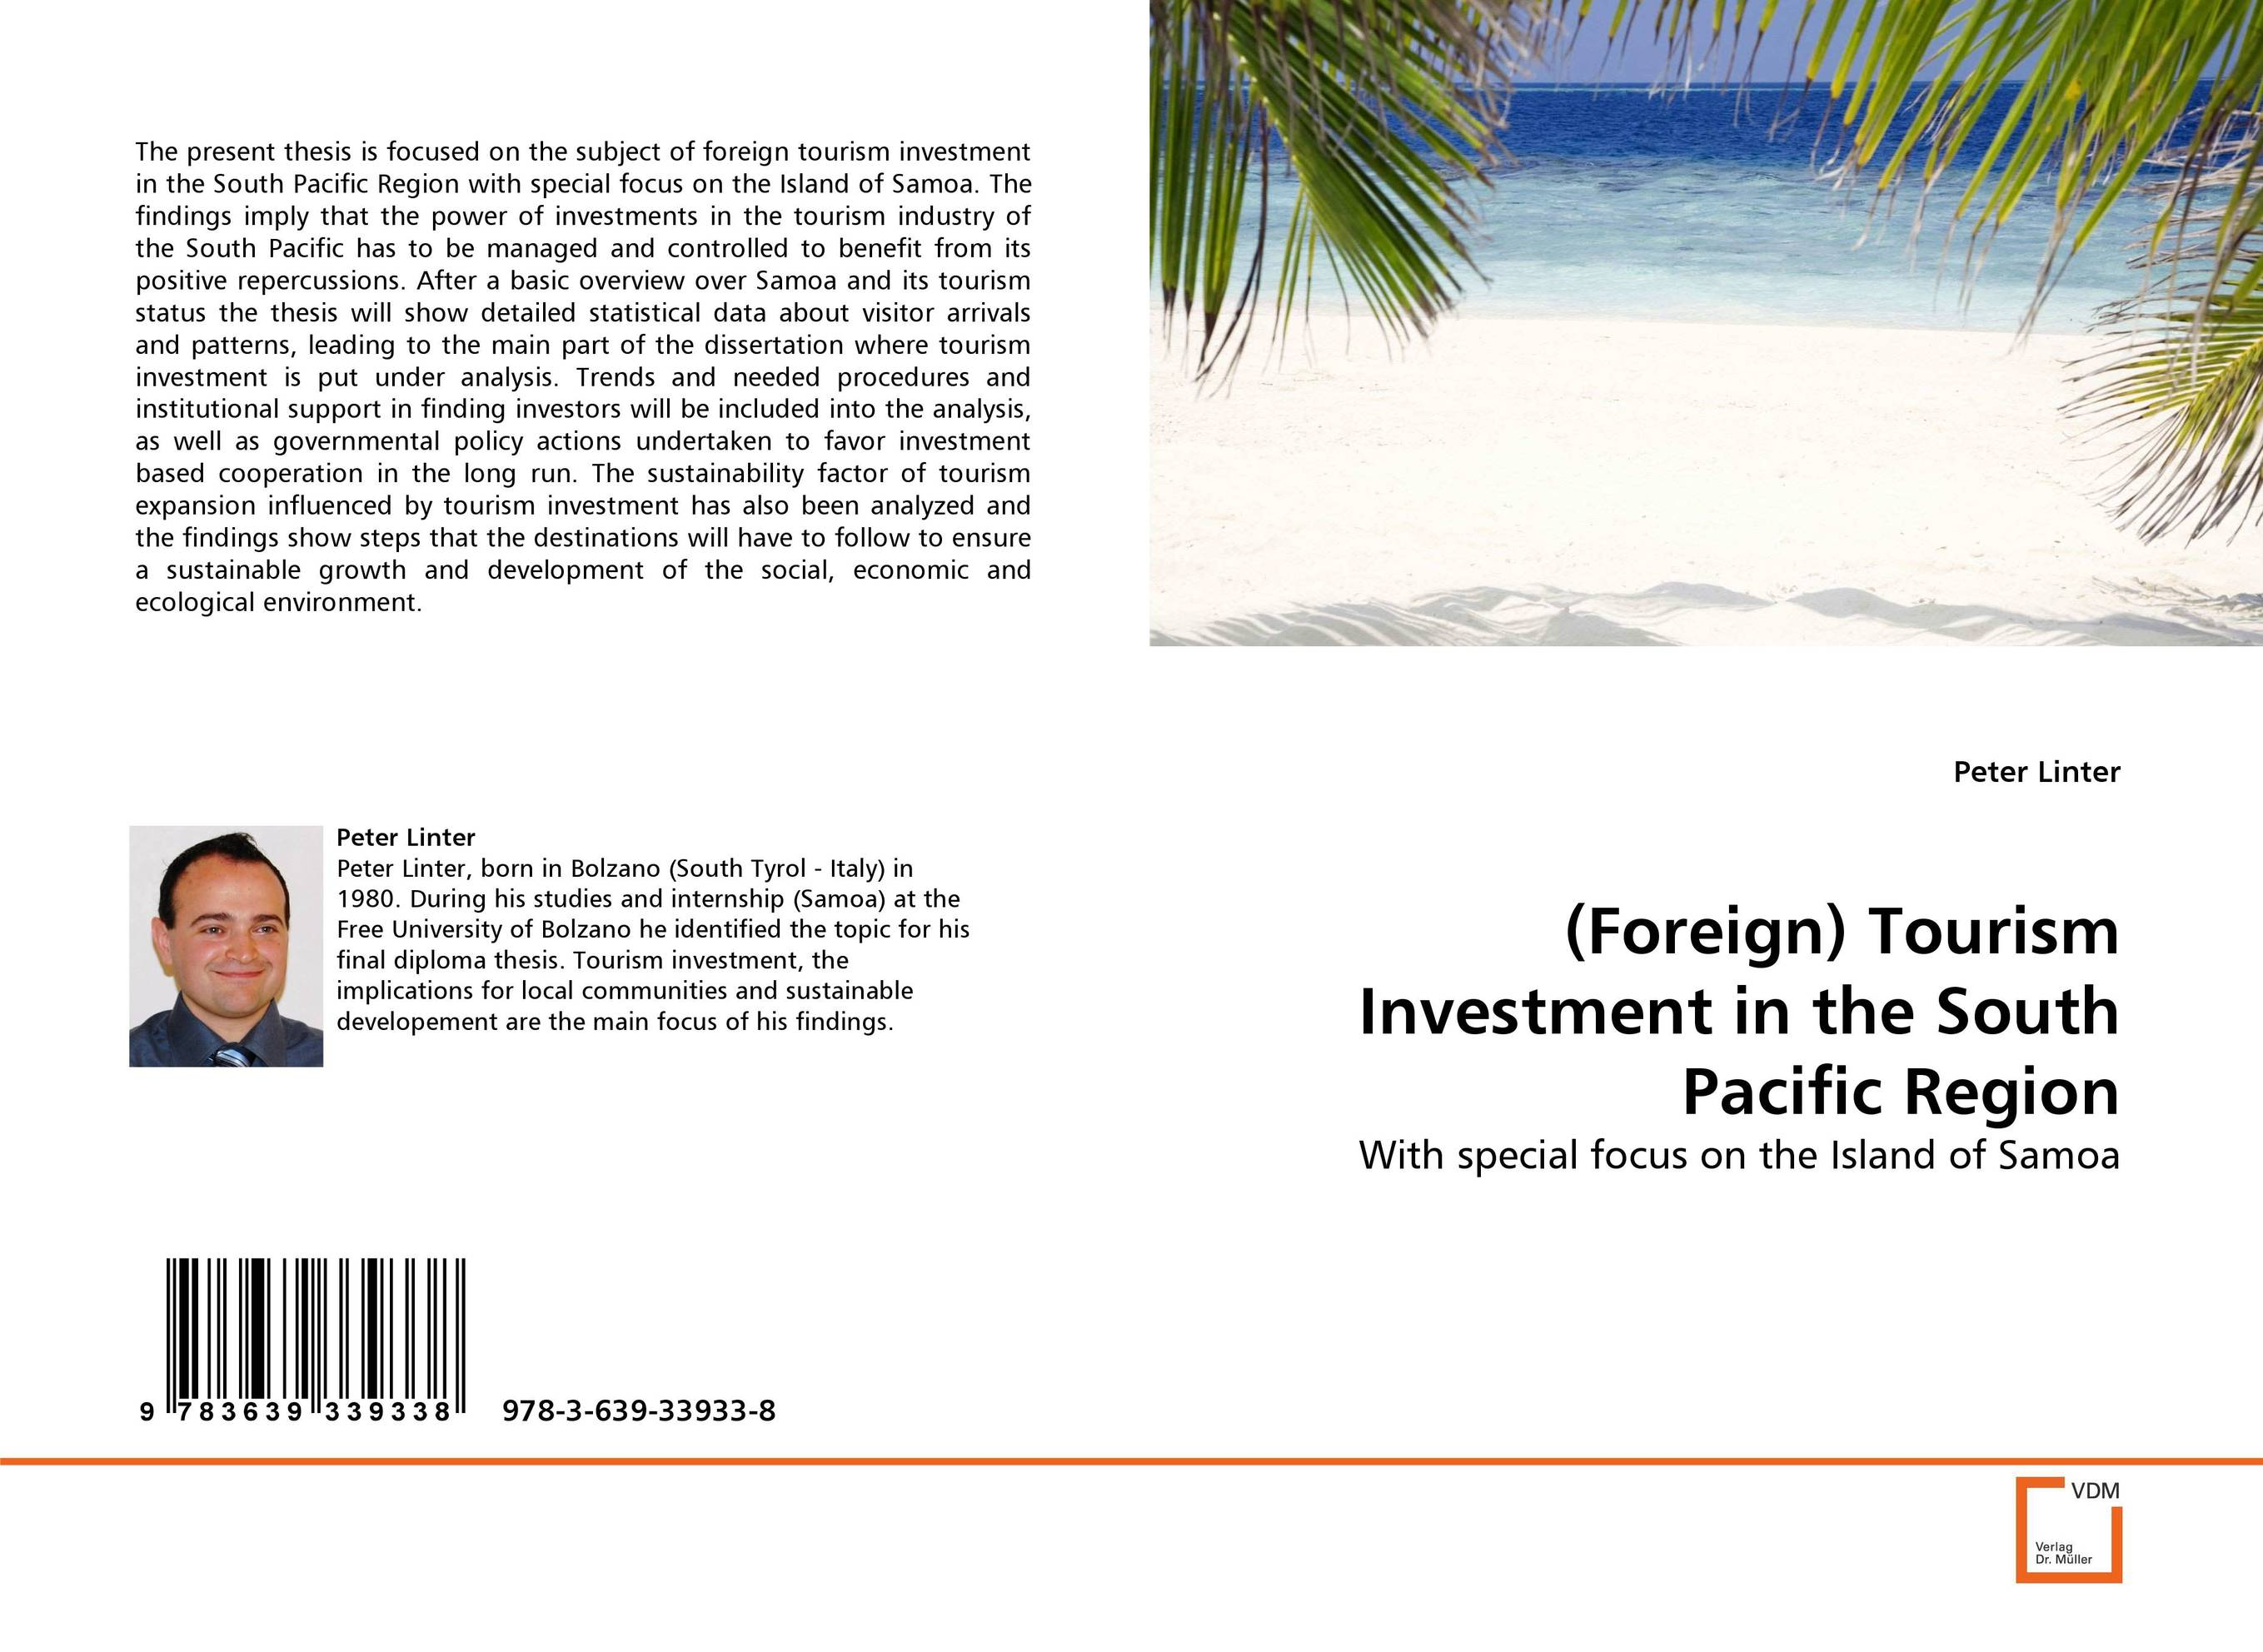 (Foreign) Tourism Investment in the South Pacific Region